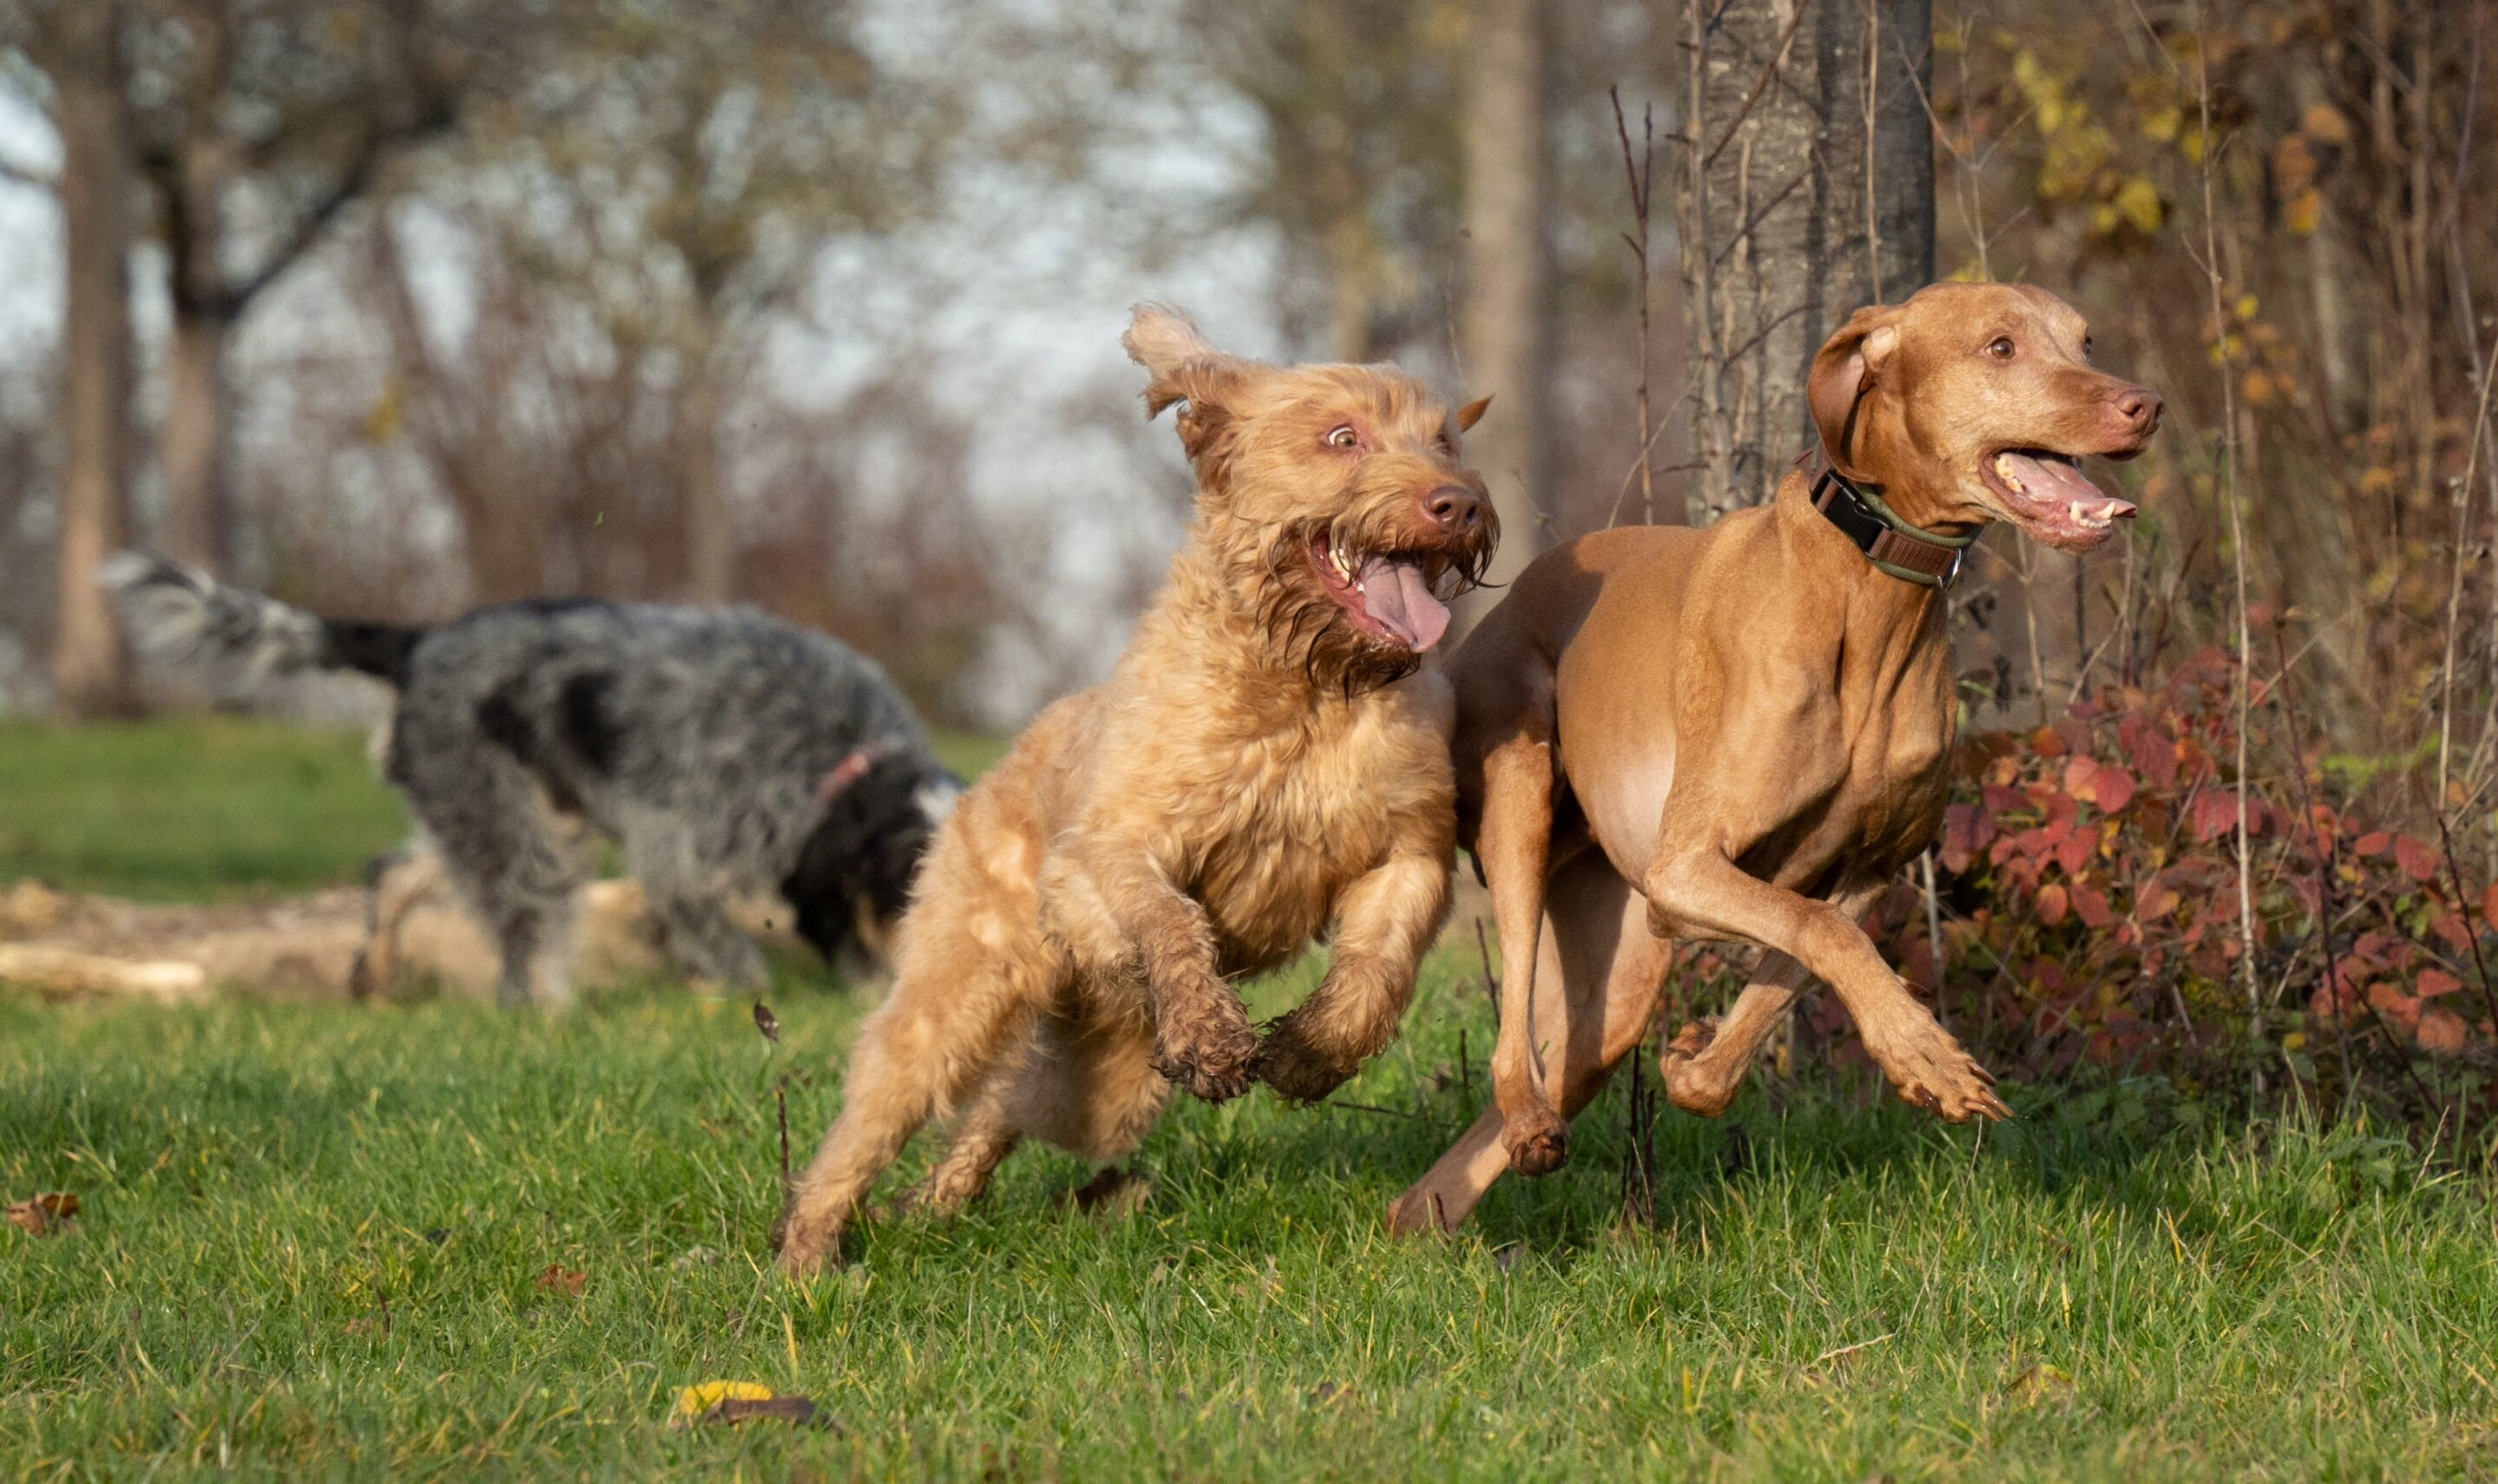 Animals laugh too, analysis of vocalization data suggests